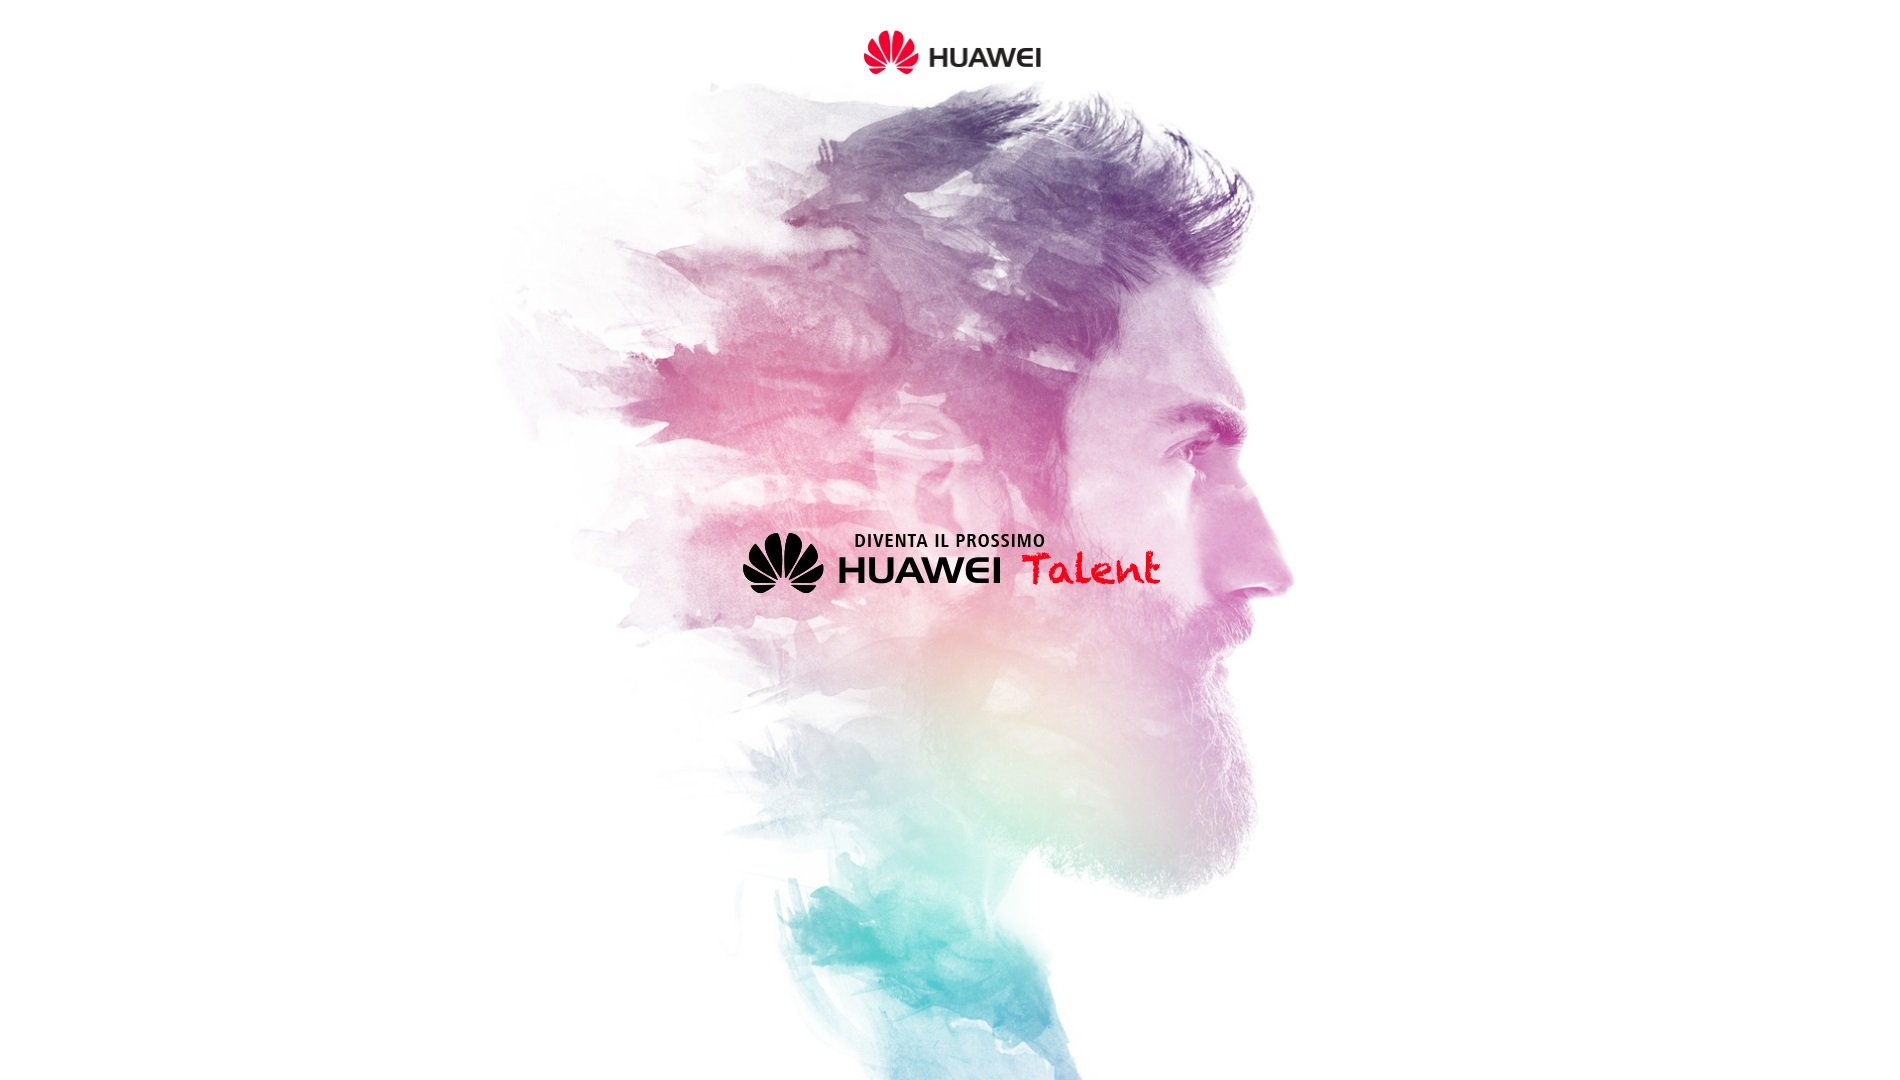 huawei talent